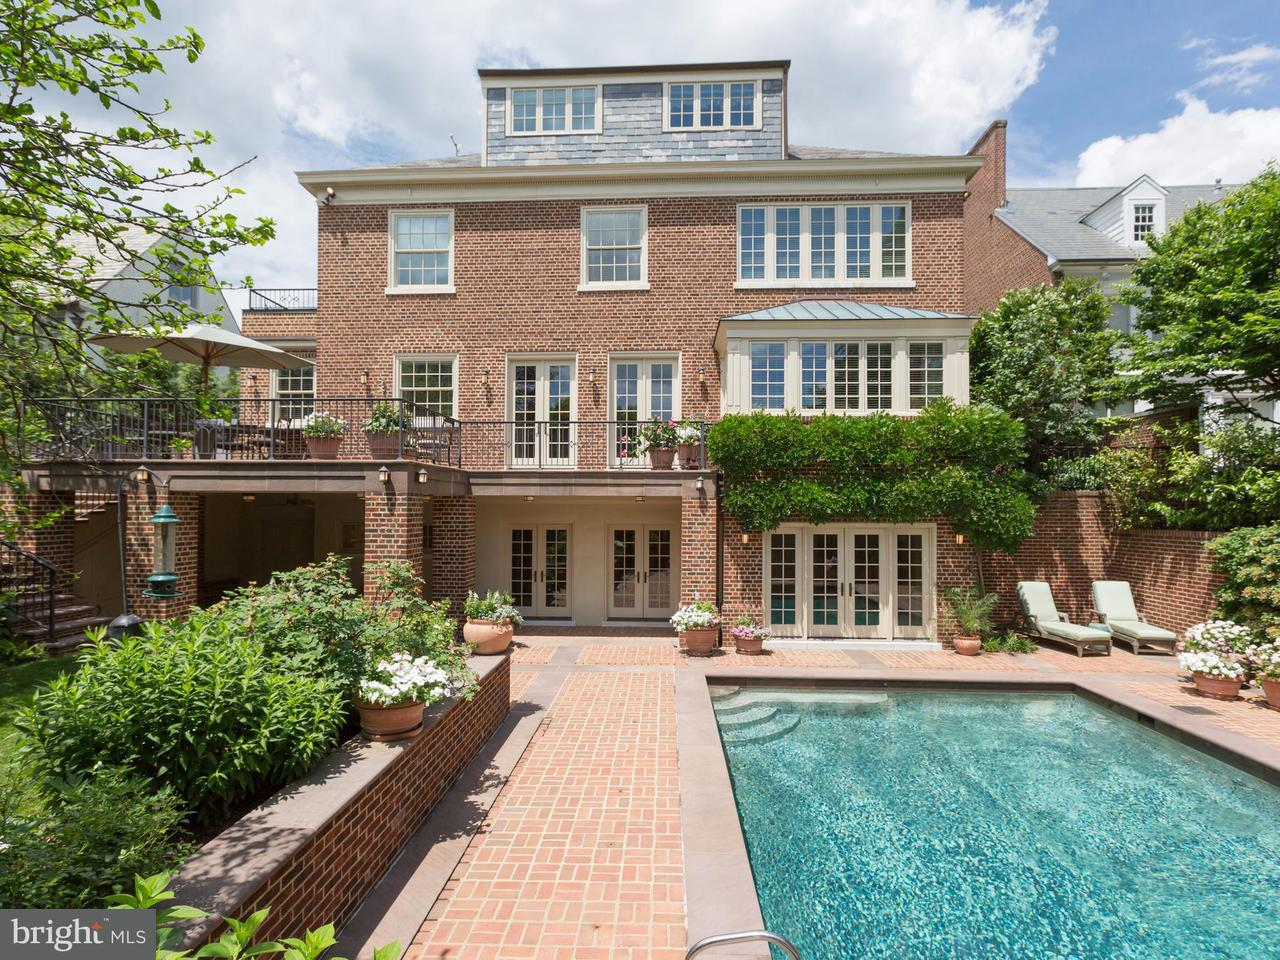 Additional photo for property listing at 2404 Wyoming Ave NW  Washington, District Of Columbia 20008 United States